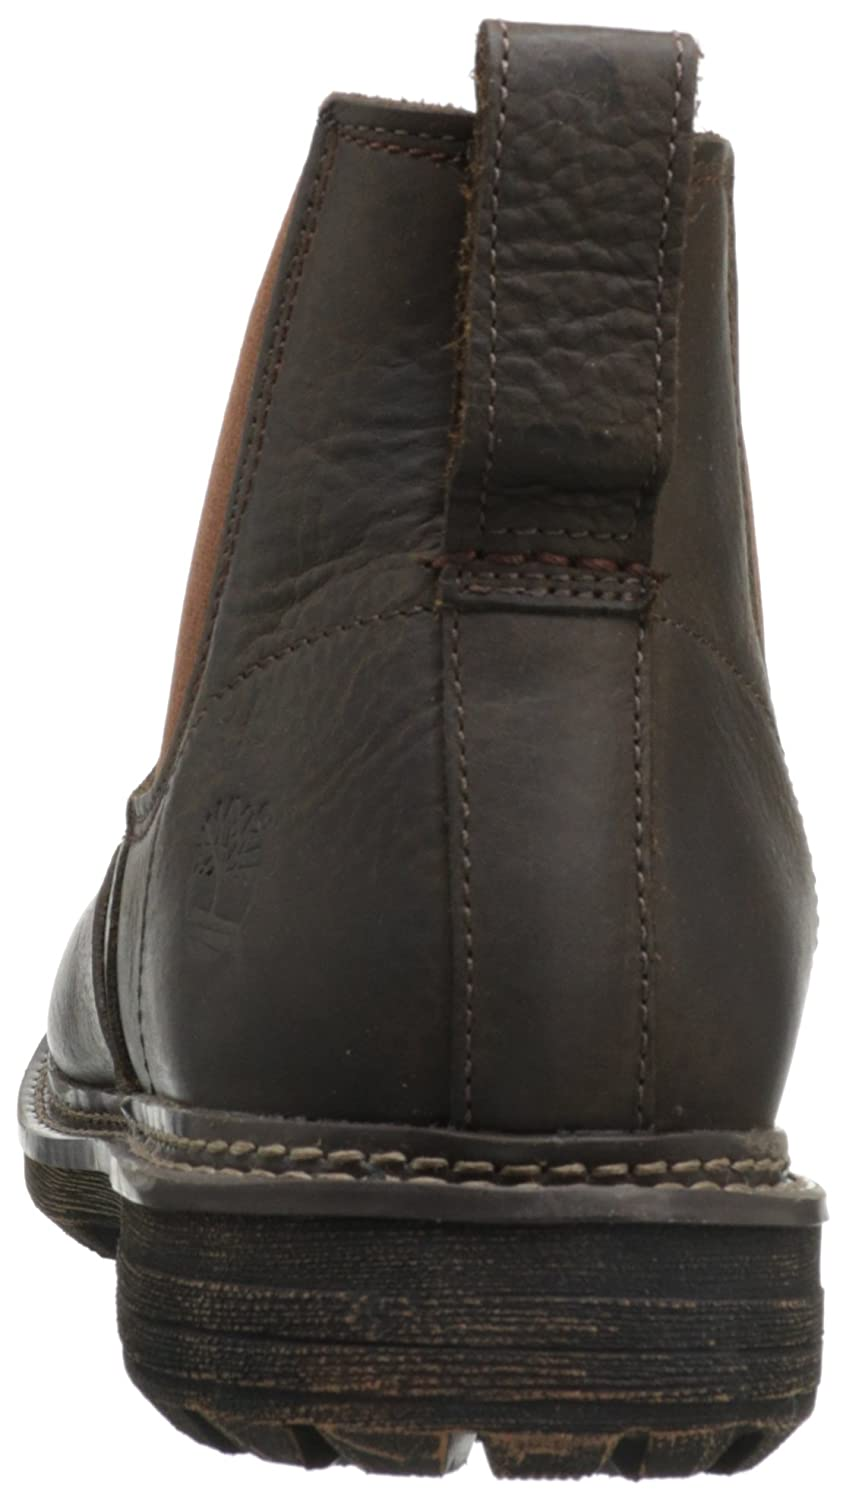 Timberland Earthkeepers Tremont Chelsea, Men's Boots: Amazon.co.uk: Shoes &  Bags